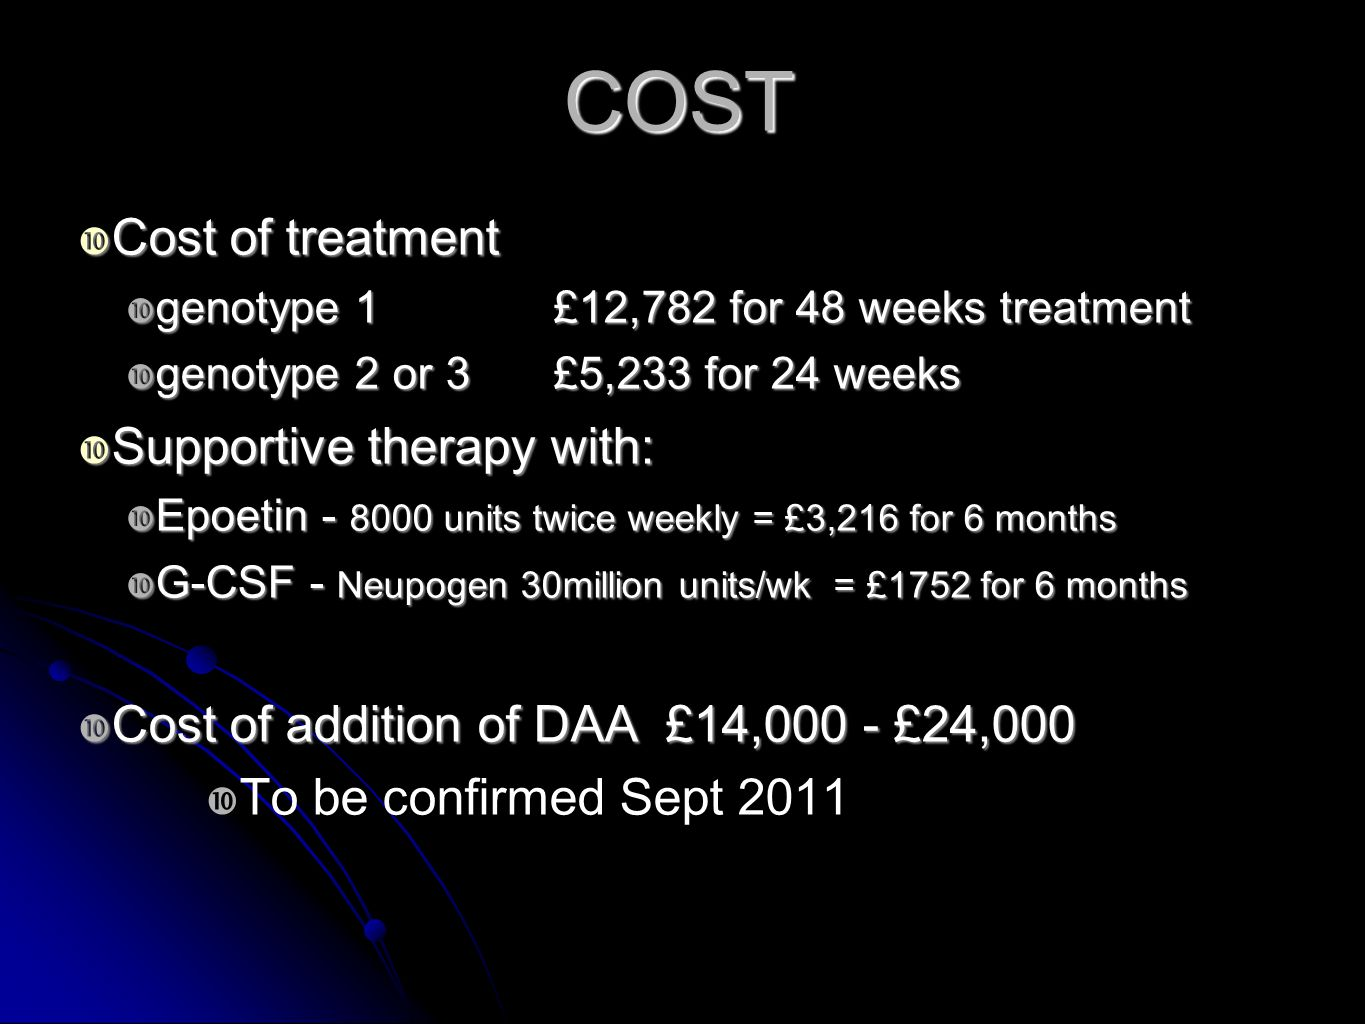 COST  Cost of treatment  genotype 1 £12,782 for 48 weeks treatment  genotype 2 or 3 £5,233 for 24 weeks  Supportive therapy with:  Epoetin - 8000 units twice weekly = £3,216 for 6 months  G-CSF - Neupogen 30million units/wk = £1752 for 6 months  Cost of addition of DAA £14,000 - £24,000  To be confirmed Sept 2011